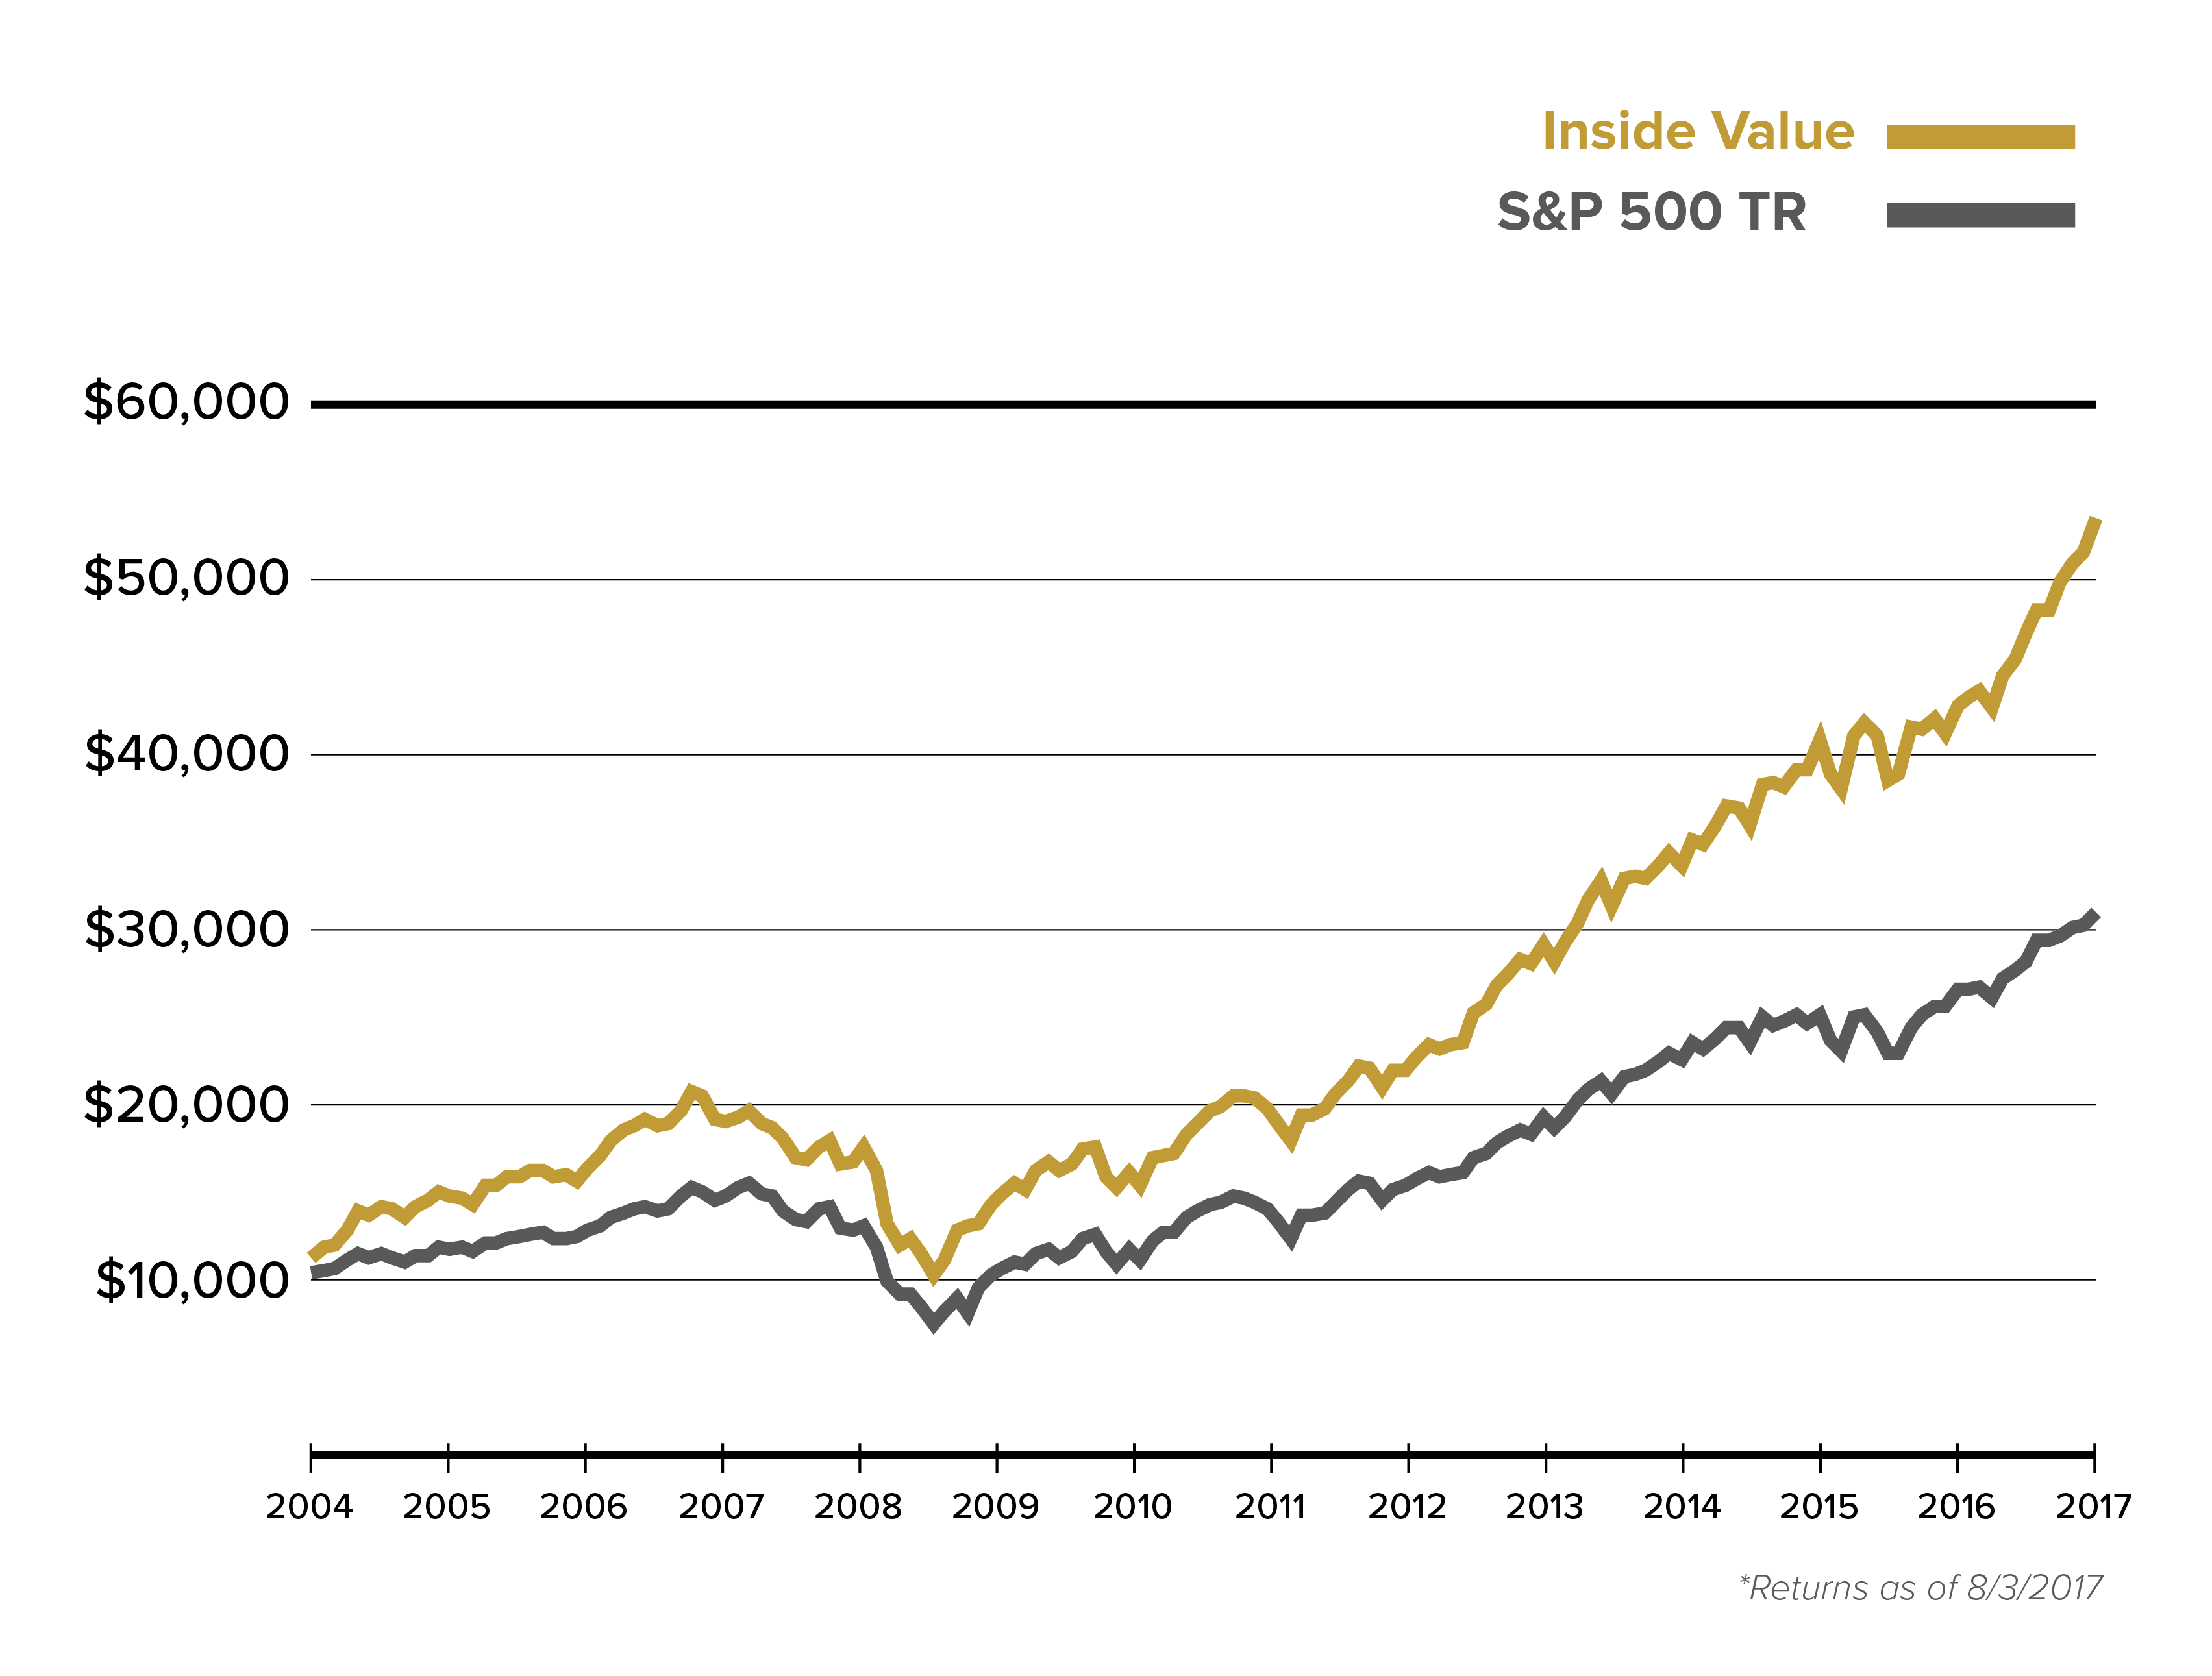 Cumulative Growth of a $10,000 Investment in Inside Value